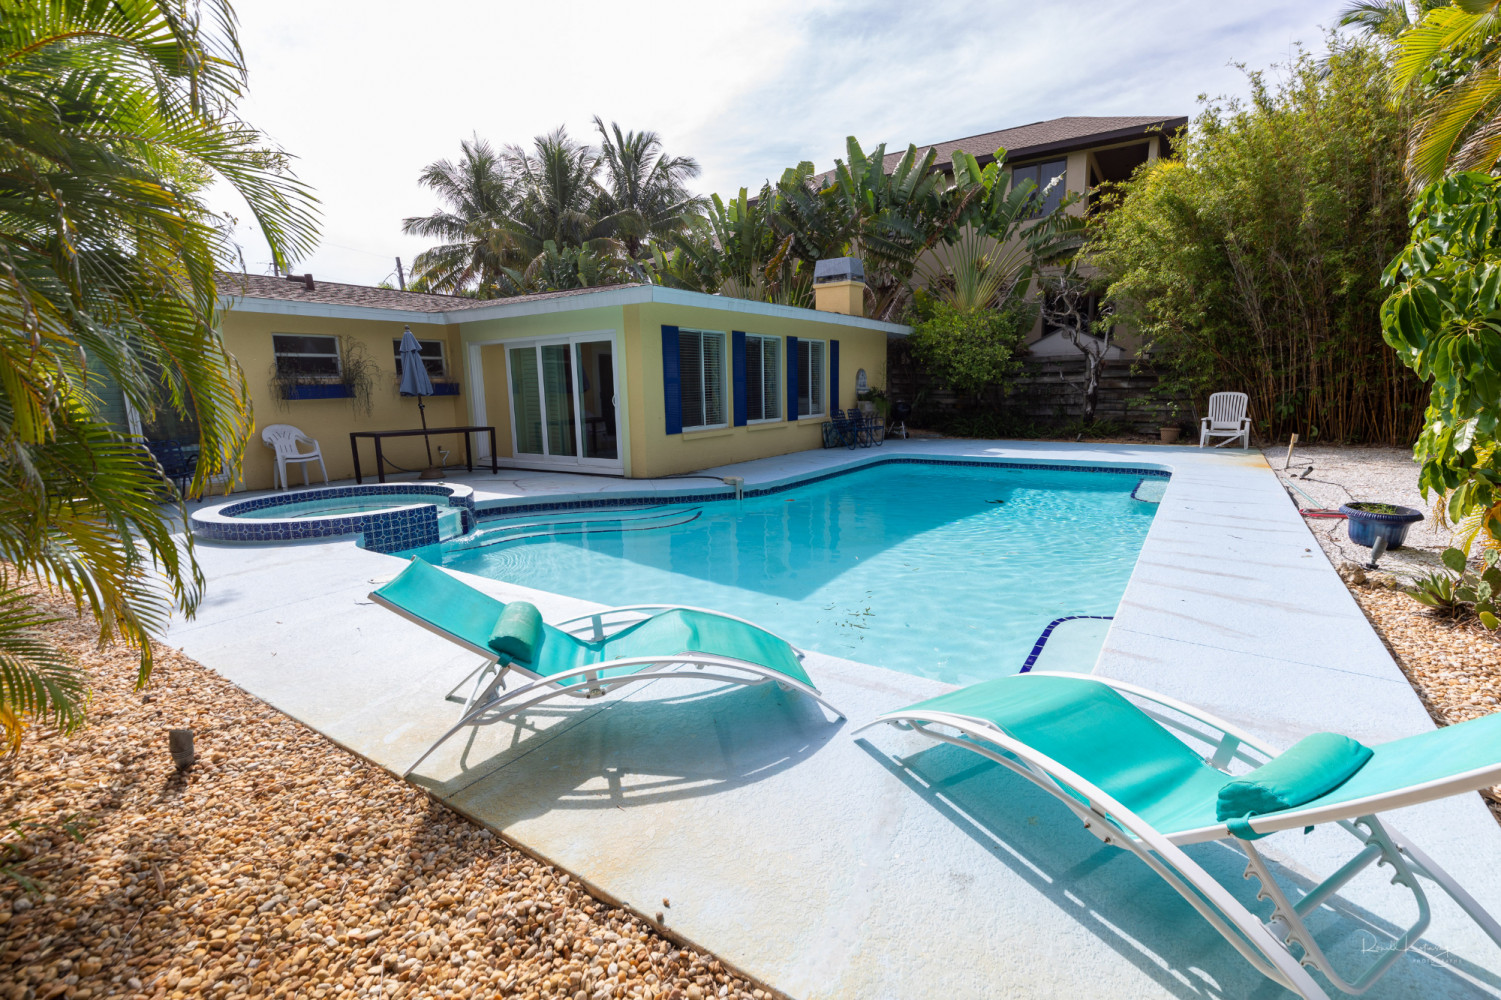 Dockside Delight - Siesta Key Vacation Rentals